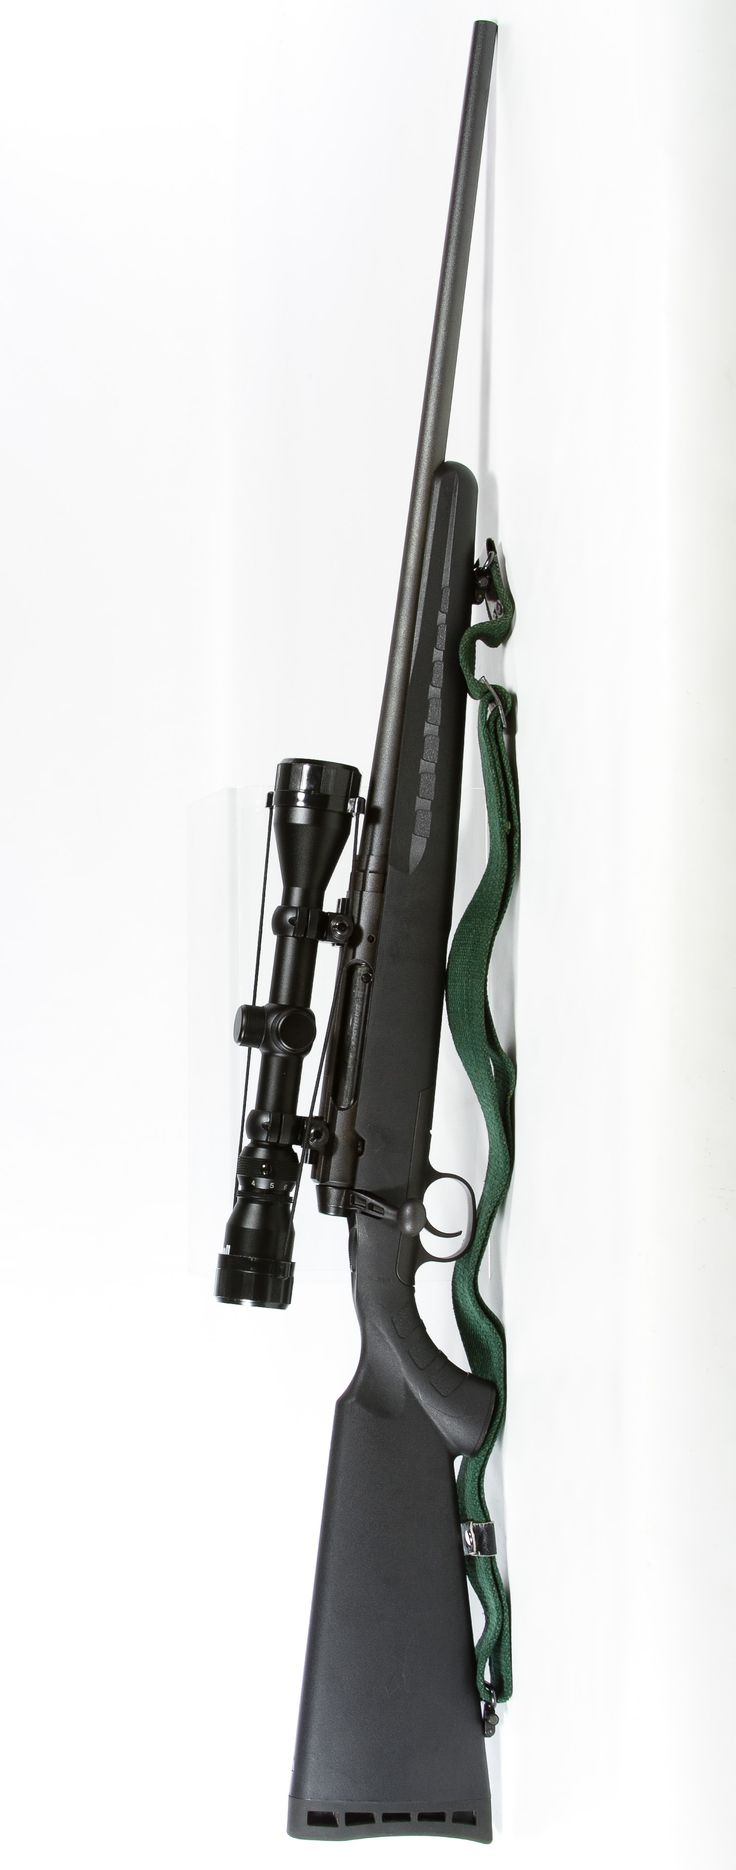 Lot 364: Savage Edge 30-06 Rifle with Scope (Serial #H145400); Magazine fed bolt action rifle with Bushnell scope, sling and Doskosport hard case